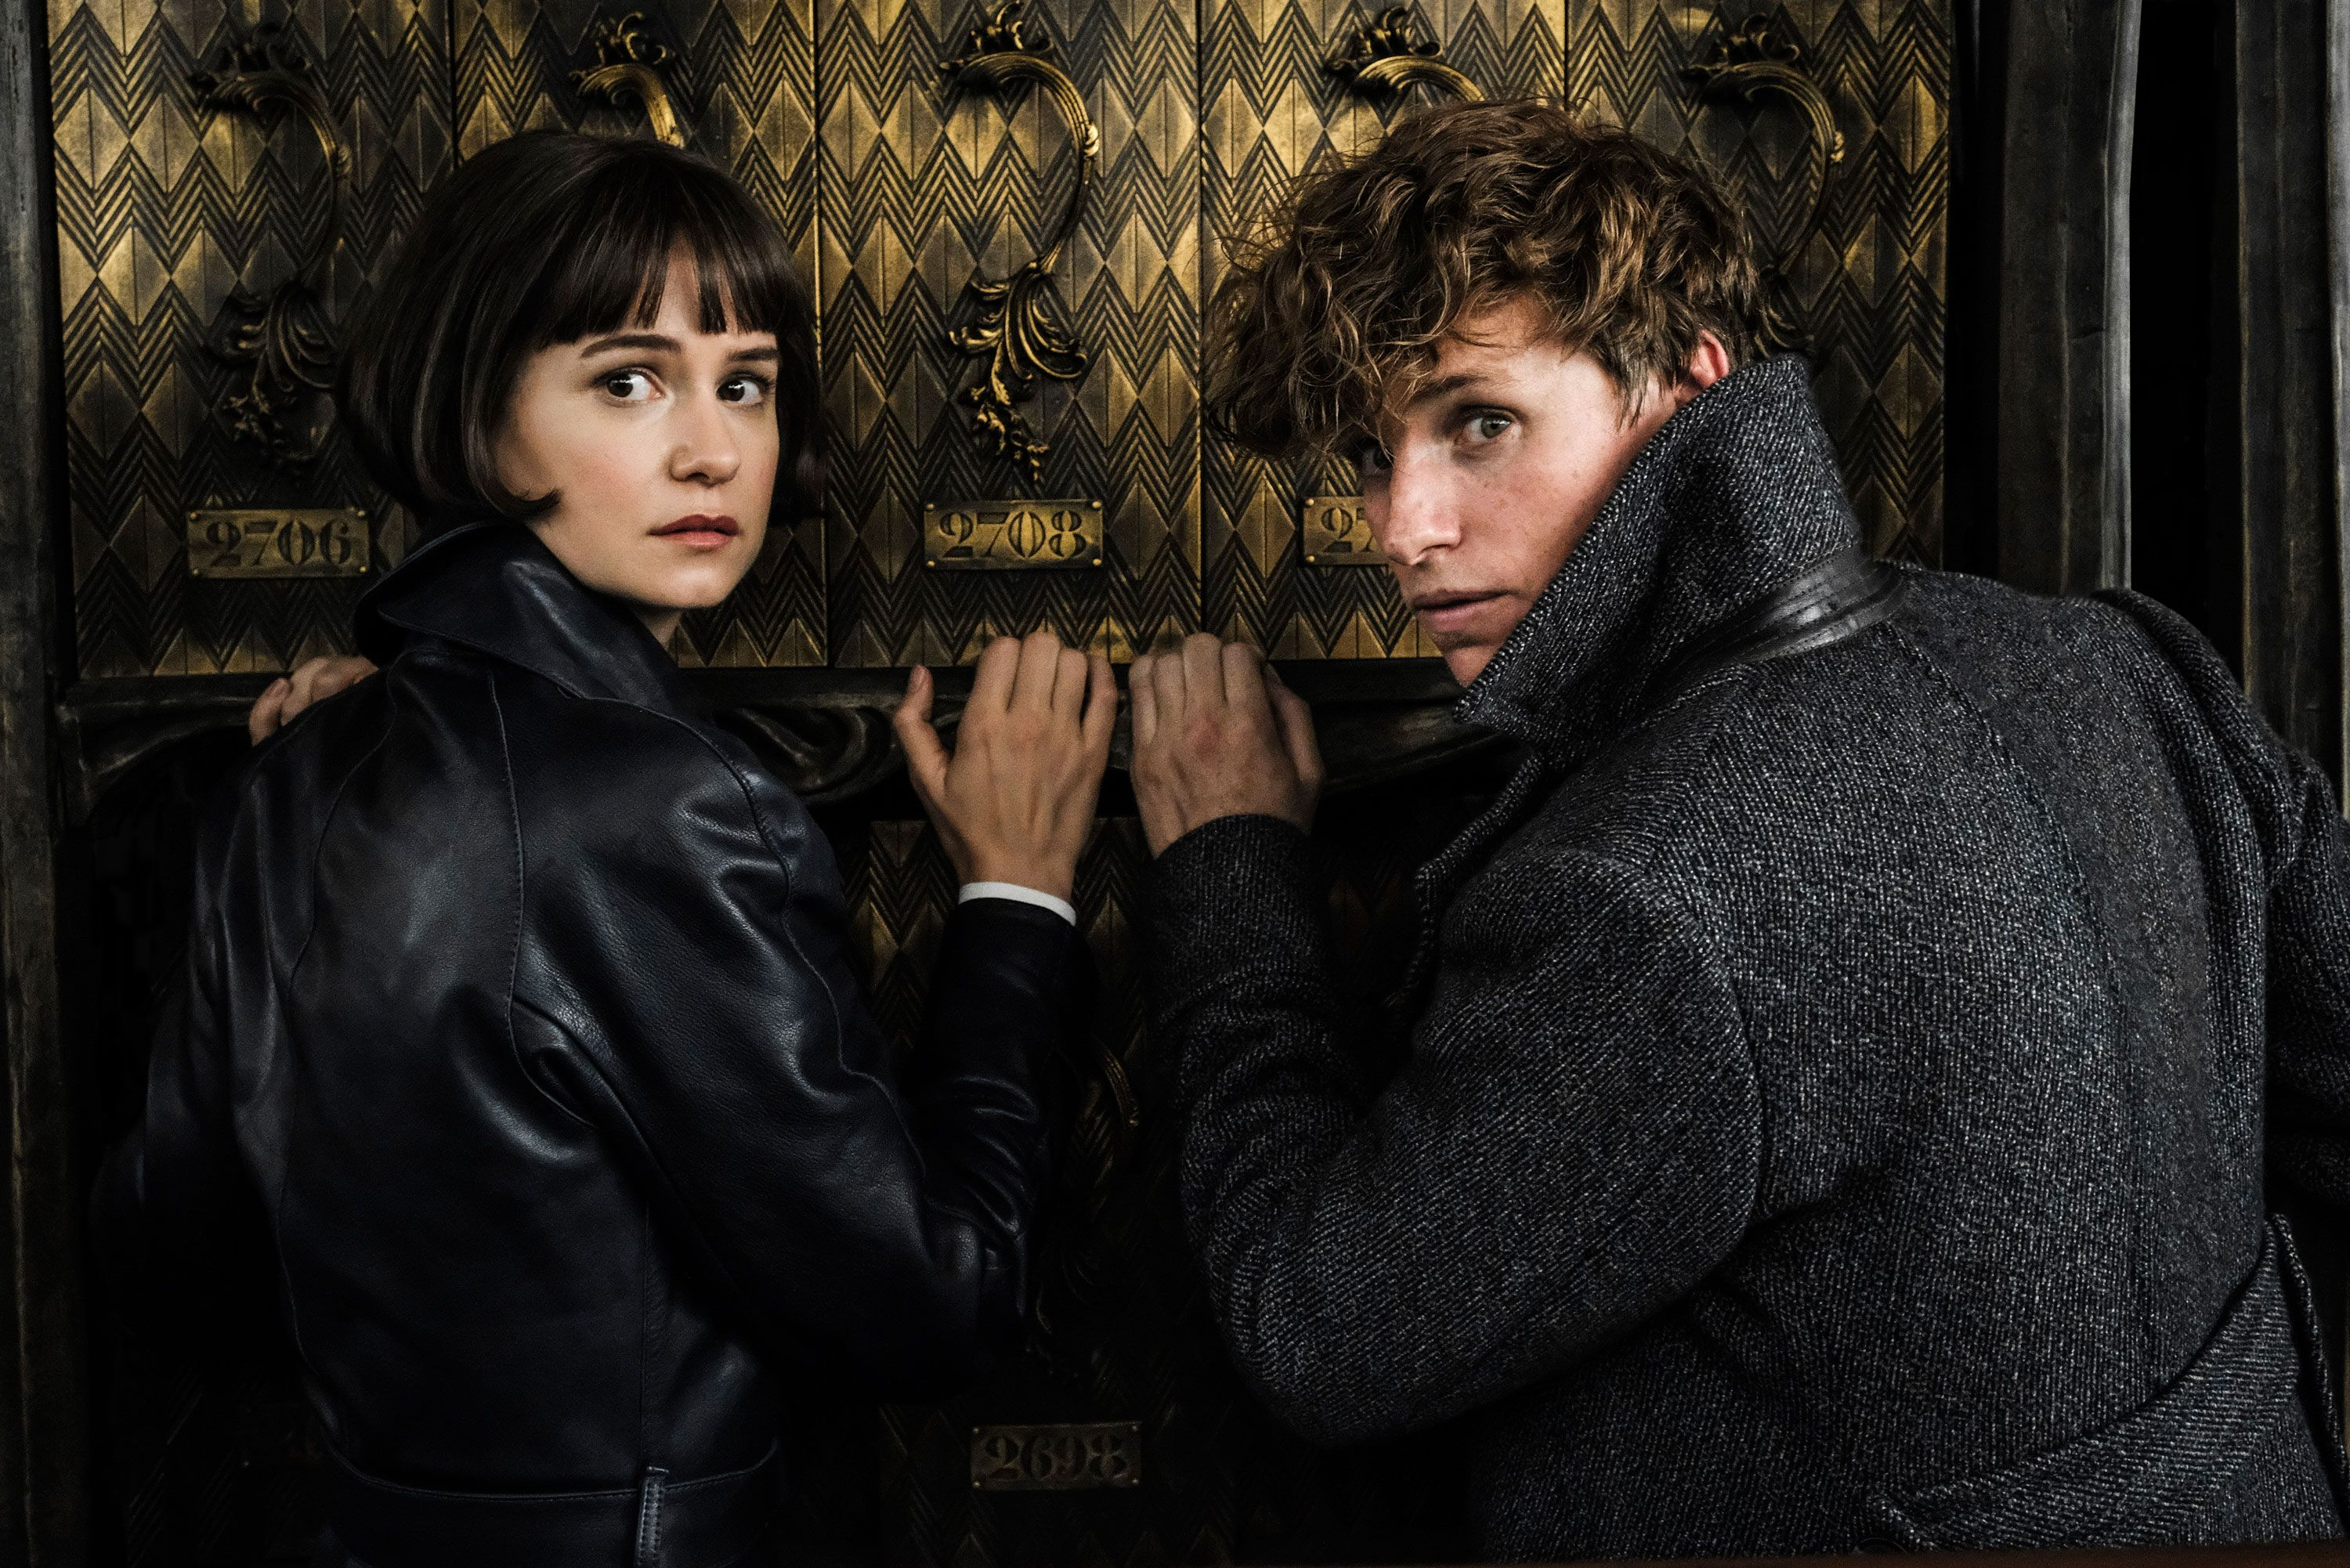 Fantastic Beasts 3 gets key changes from Warner Bros to fix the franchise